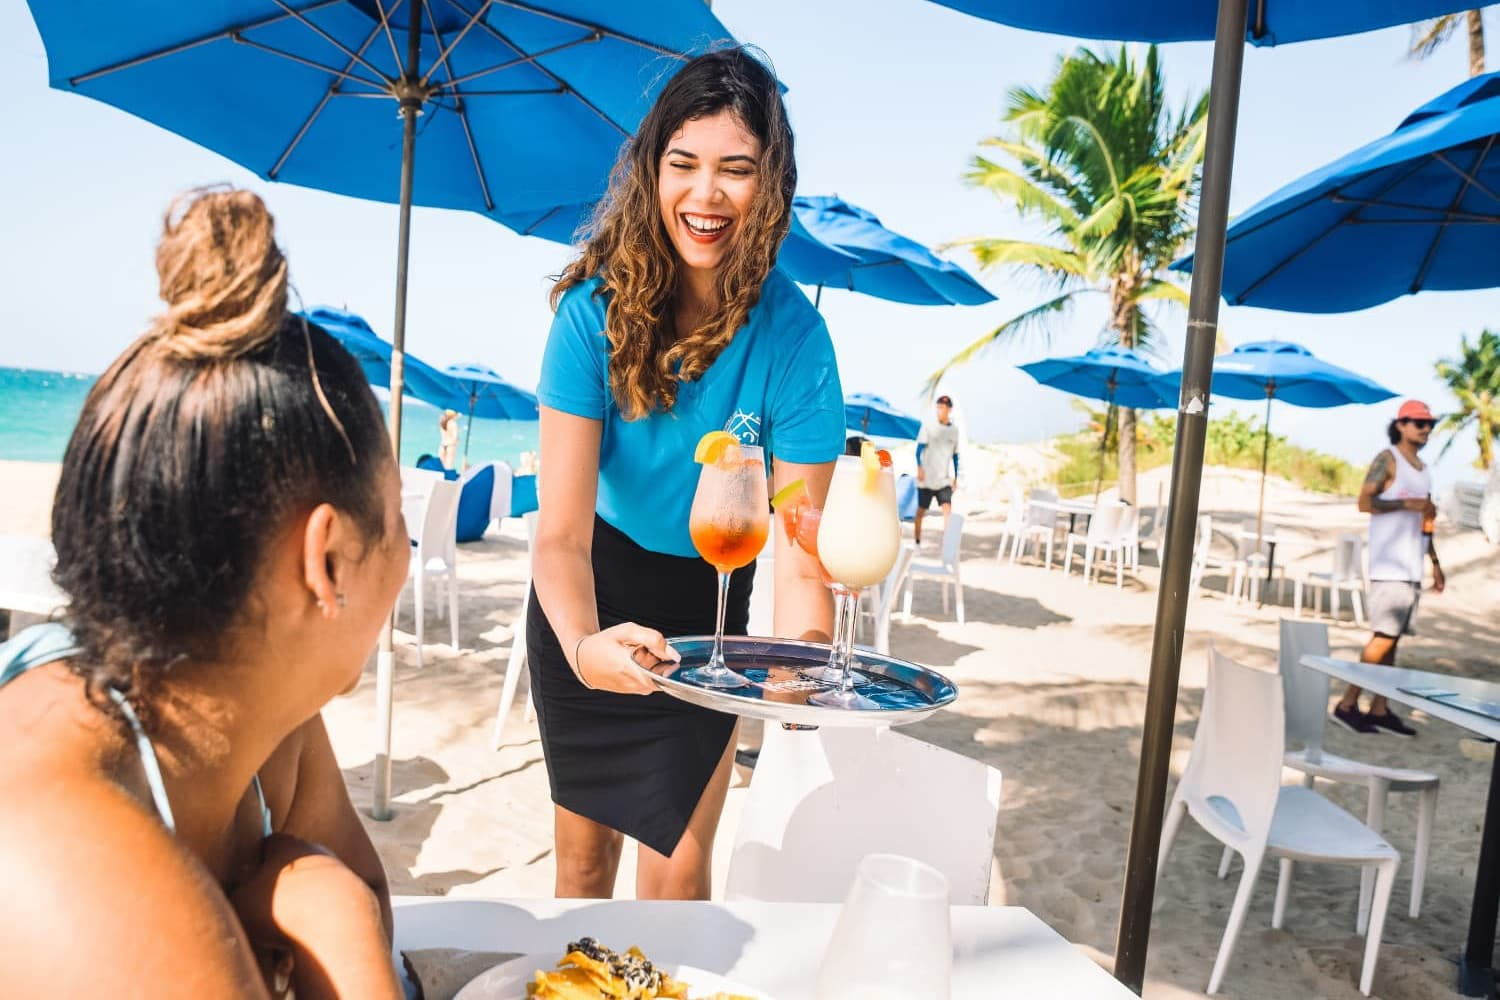 Drinks and appetizers are served on the beach at Numero Uno Beach Bar and Restaurant in Puerto Rico.